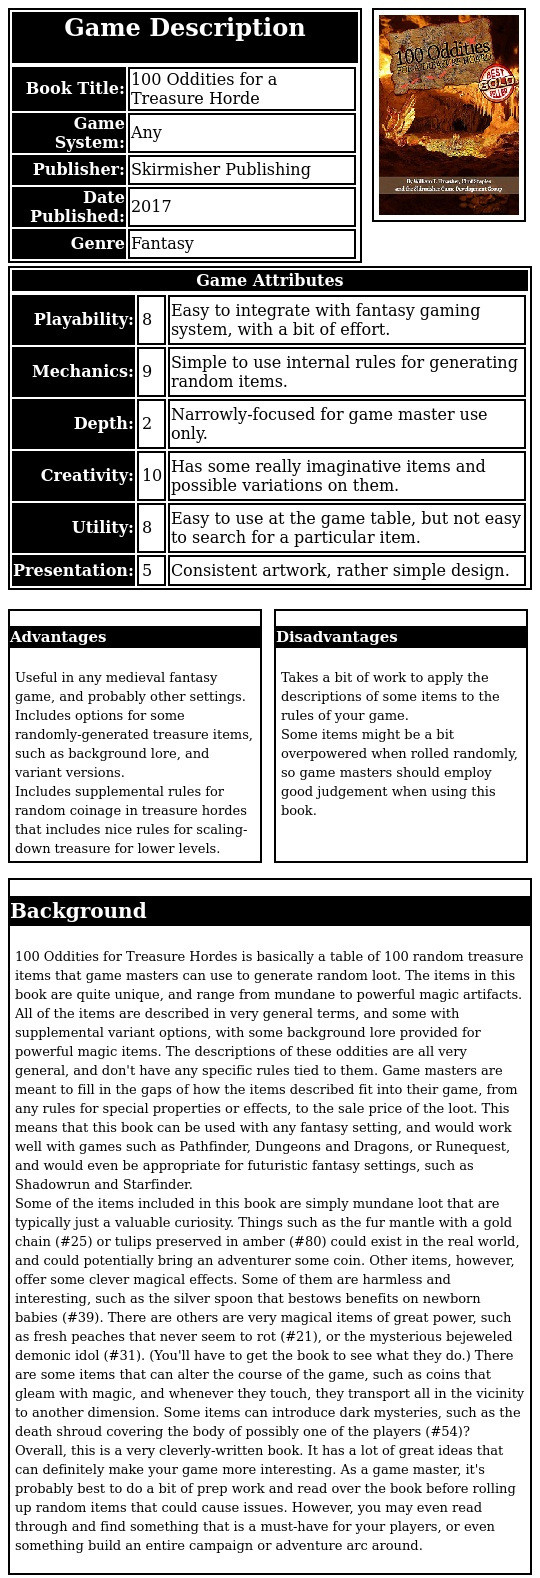 100 Oddities for Treasure Hordes is basically a table of 100 random treasure items that game masters can use to generate random loot. The items in this book are quite unique, and range from mundane to powerful magic artifacts. All of the items are described in very general terms, and some with supplemental variant options, with some background lore provided for powerful magic items. The descriptions of these oddities are all very general, and don't have any specific rules tied to them. Game masters are meant to fill in the gaps of how the items described fit into their game, from any rules for special properties or effects, to the sale price of the loot. This means that this book can be used with any fantasy setting, and would work well with games such as Pathfinder, Dungeons and Dragons, or Runequest, and would even be appropriate for futuristic fantasy settings, such as Shadowrun and Starfinder. Some of the items included in this book are simply mundane loot that are typically just a valuable curiosity. Things such as the fur mantle with a gold chain (#25) or tulips preserved in amber (#80) could exist in the real world, and could potentially bring an adventurer some coin. Other items, however, offer some clever magical effects. Some of them are harmless and interesting, such as the silver spoon that bestows benefits on newborn babies (#39). There are others are very magical items of great power, such as fresh peaches that never seem to rot (#21), or the mysterious bejeweled demonic idol (#31). (You'll have to get the book to see what they do.) There are some items that can alter the course of the game, such as coins that gleam with magic, and whenever they touch, they transport all in the vicinity to another dimension. Some items can introduce dark mysteries, such as the death shroud covering the body of possibly one of the players (#54)?  Overall, this is a very cleverly-written book. It has a lot of great ideas that can definitely make your game more interestin